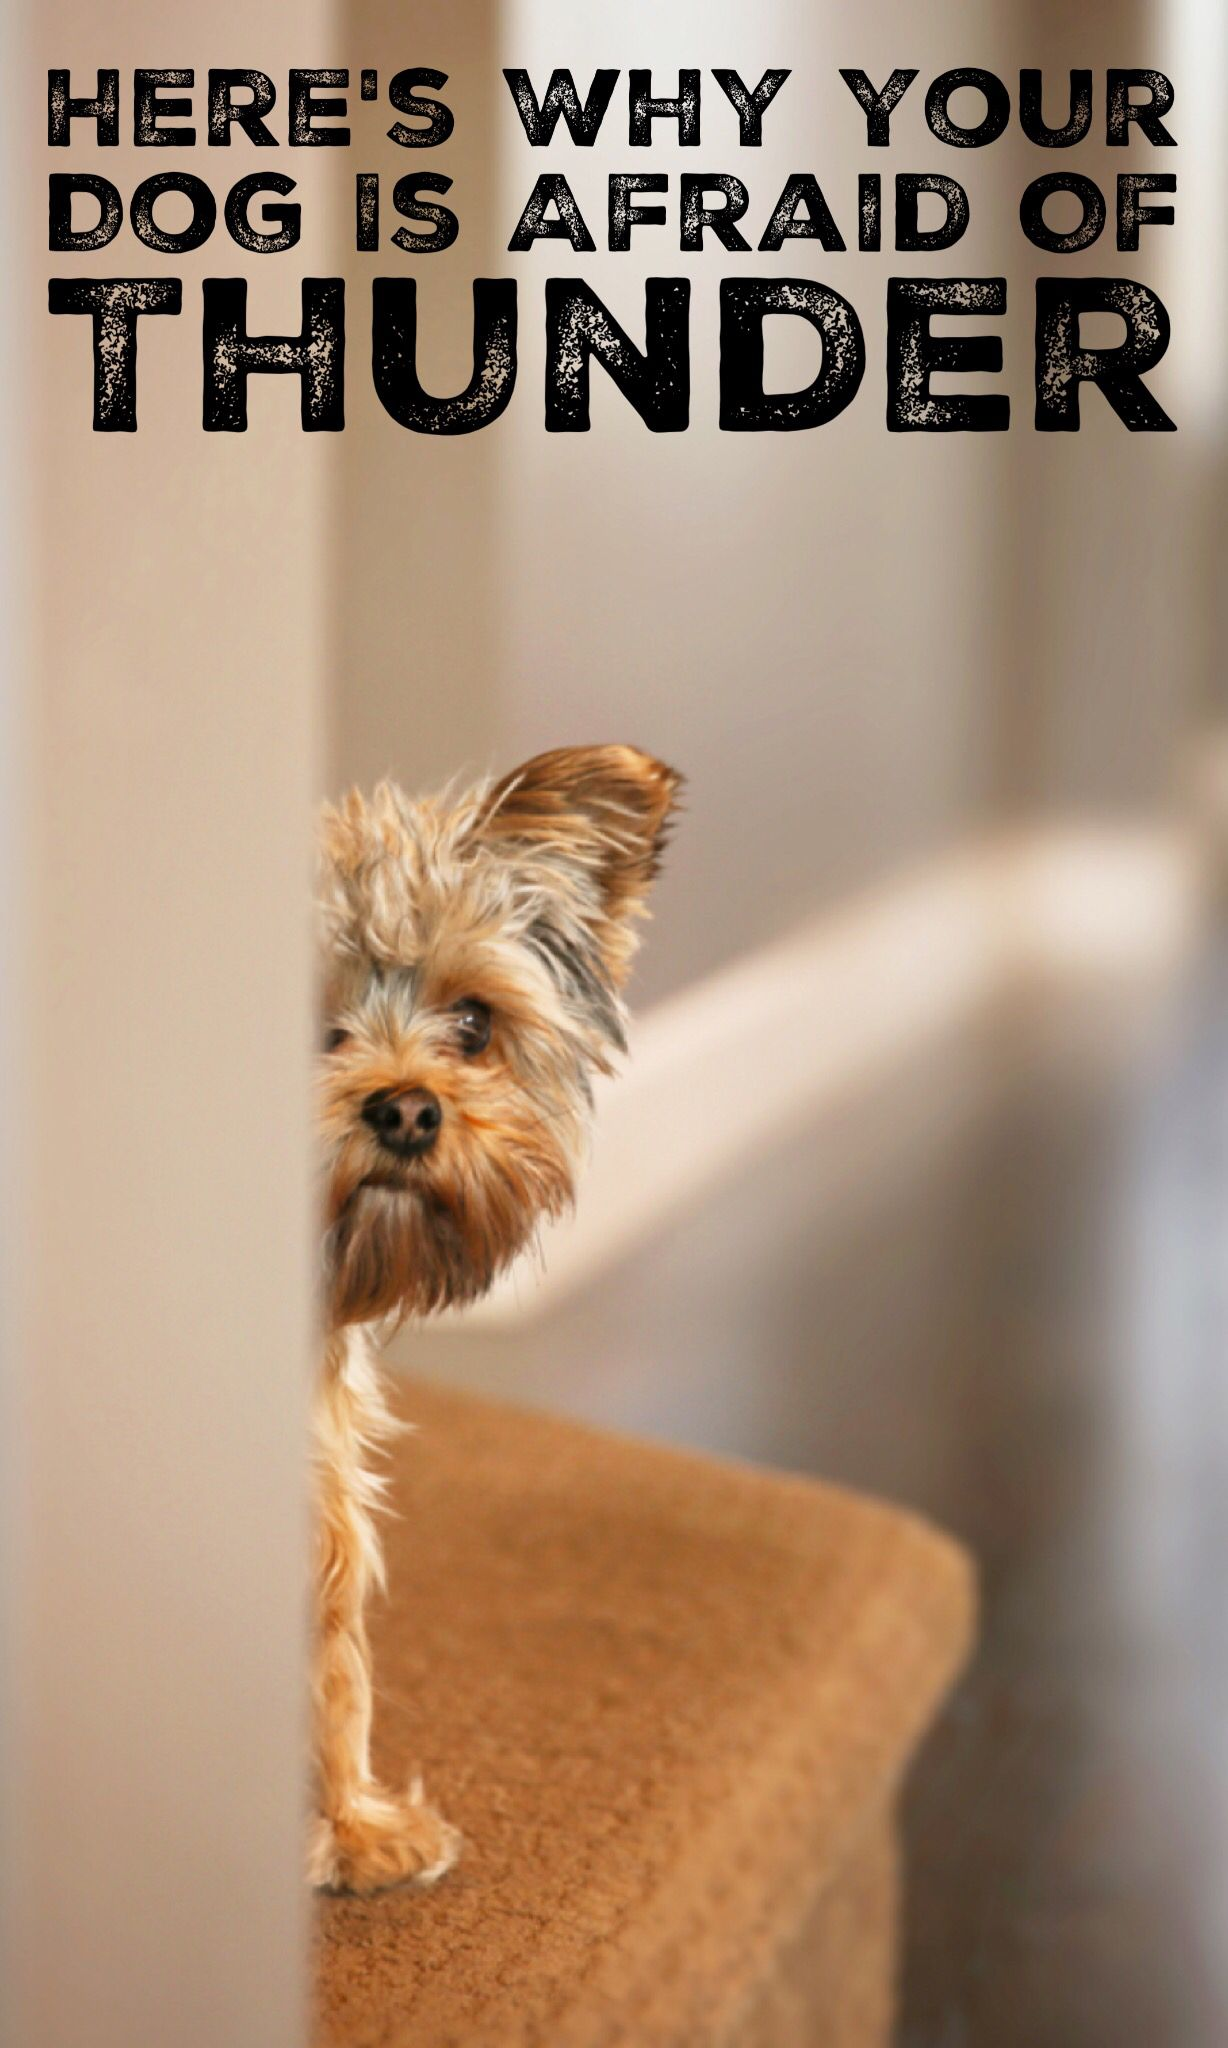 Does your dog (or cat!) have a thunderstorm phobia? We're